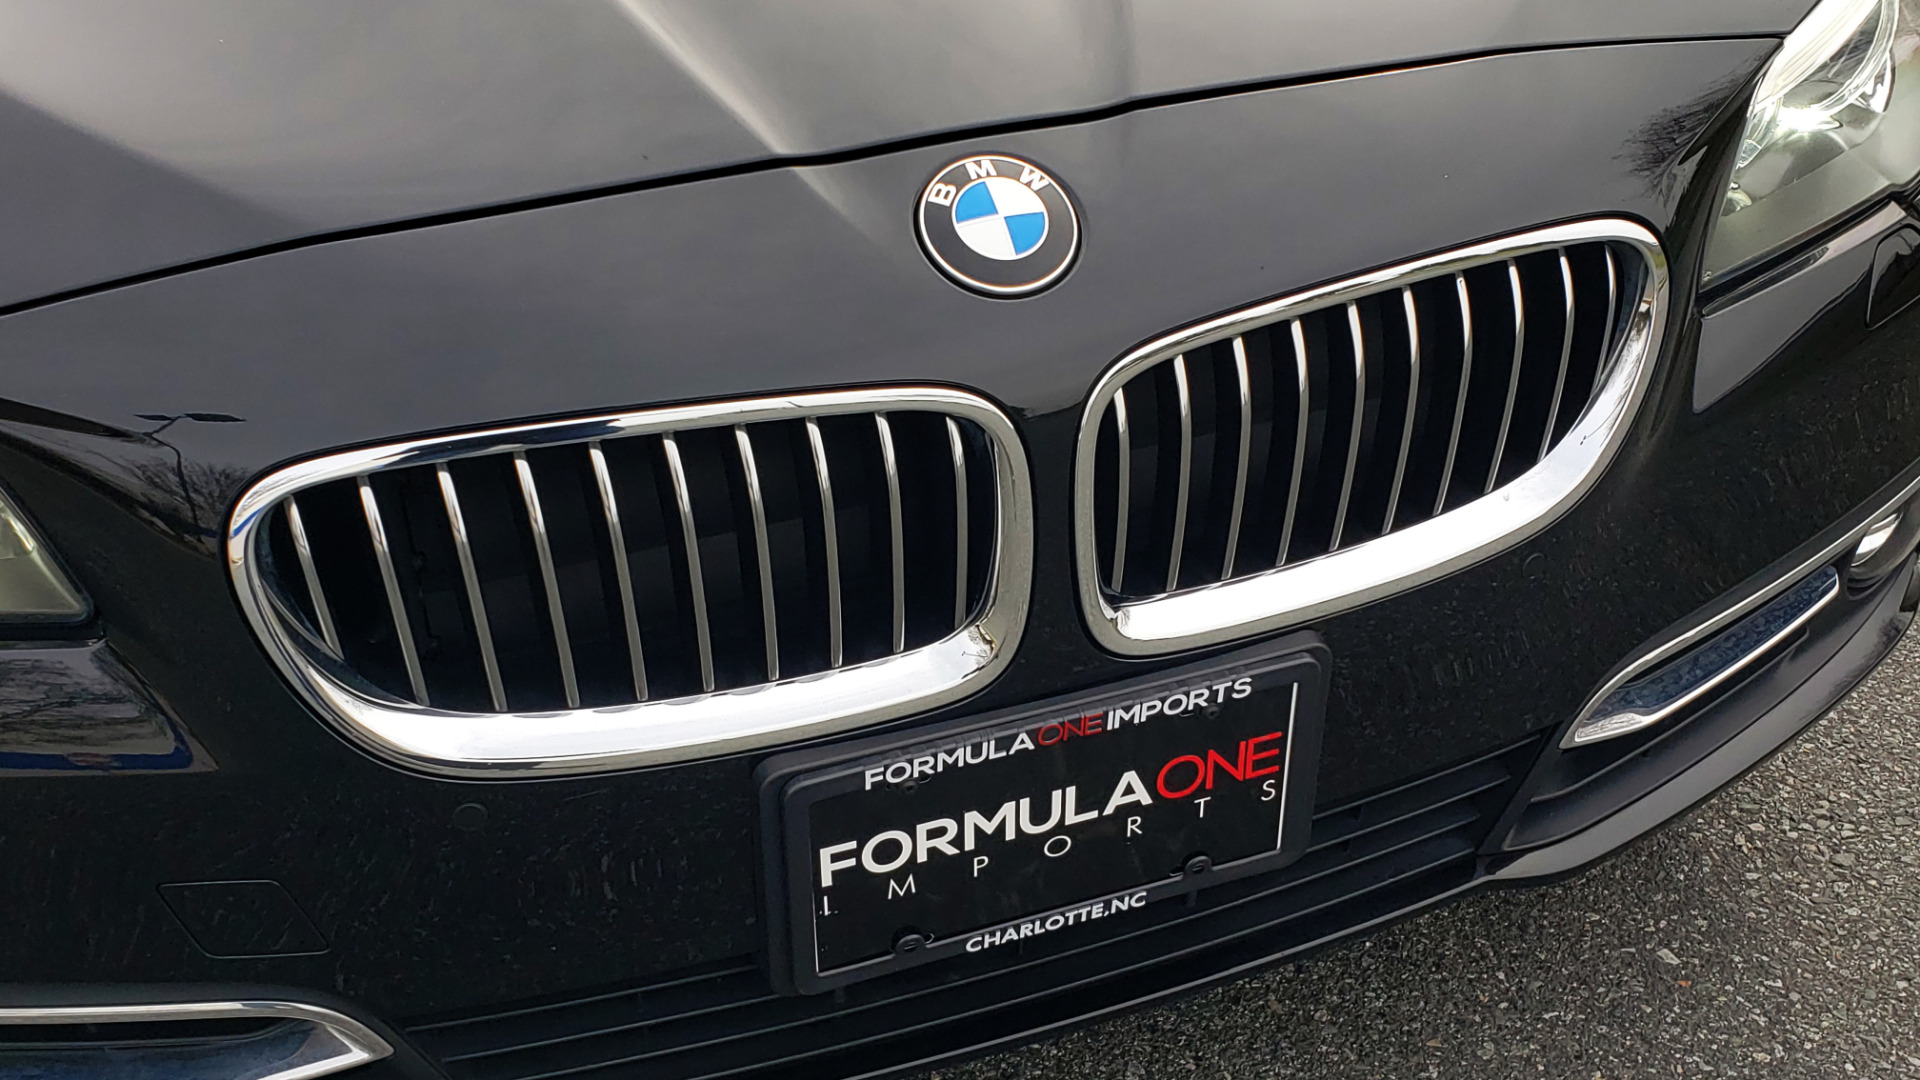 Used 2016 BMW 5 SERIES 528i XDRIVE / PREM PKG / DRVR ASST PLUS / LUXURY / COLD WTHR for sale Sold at Formula Imports in Charlotte NC 28227 26